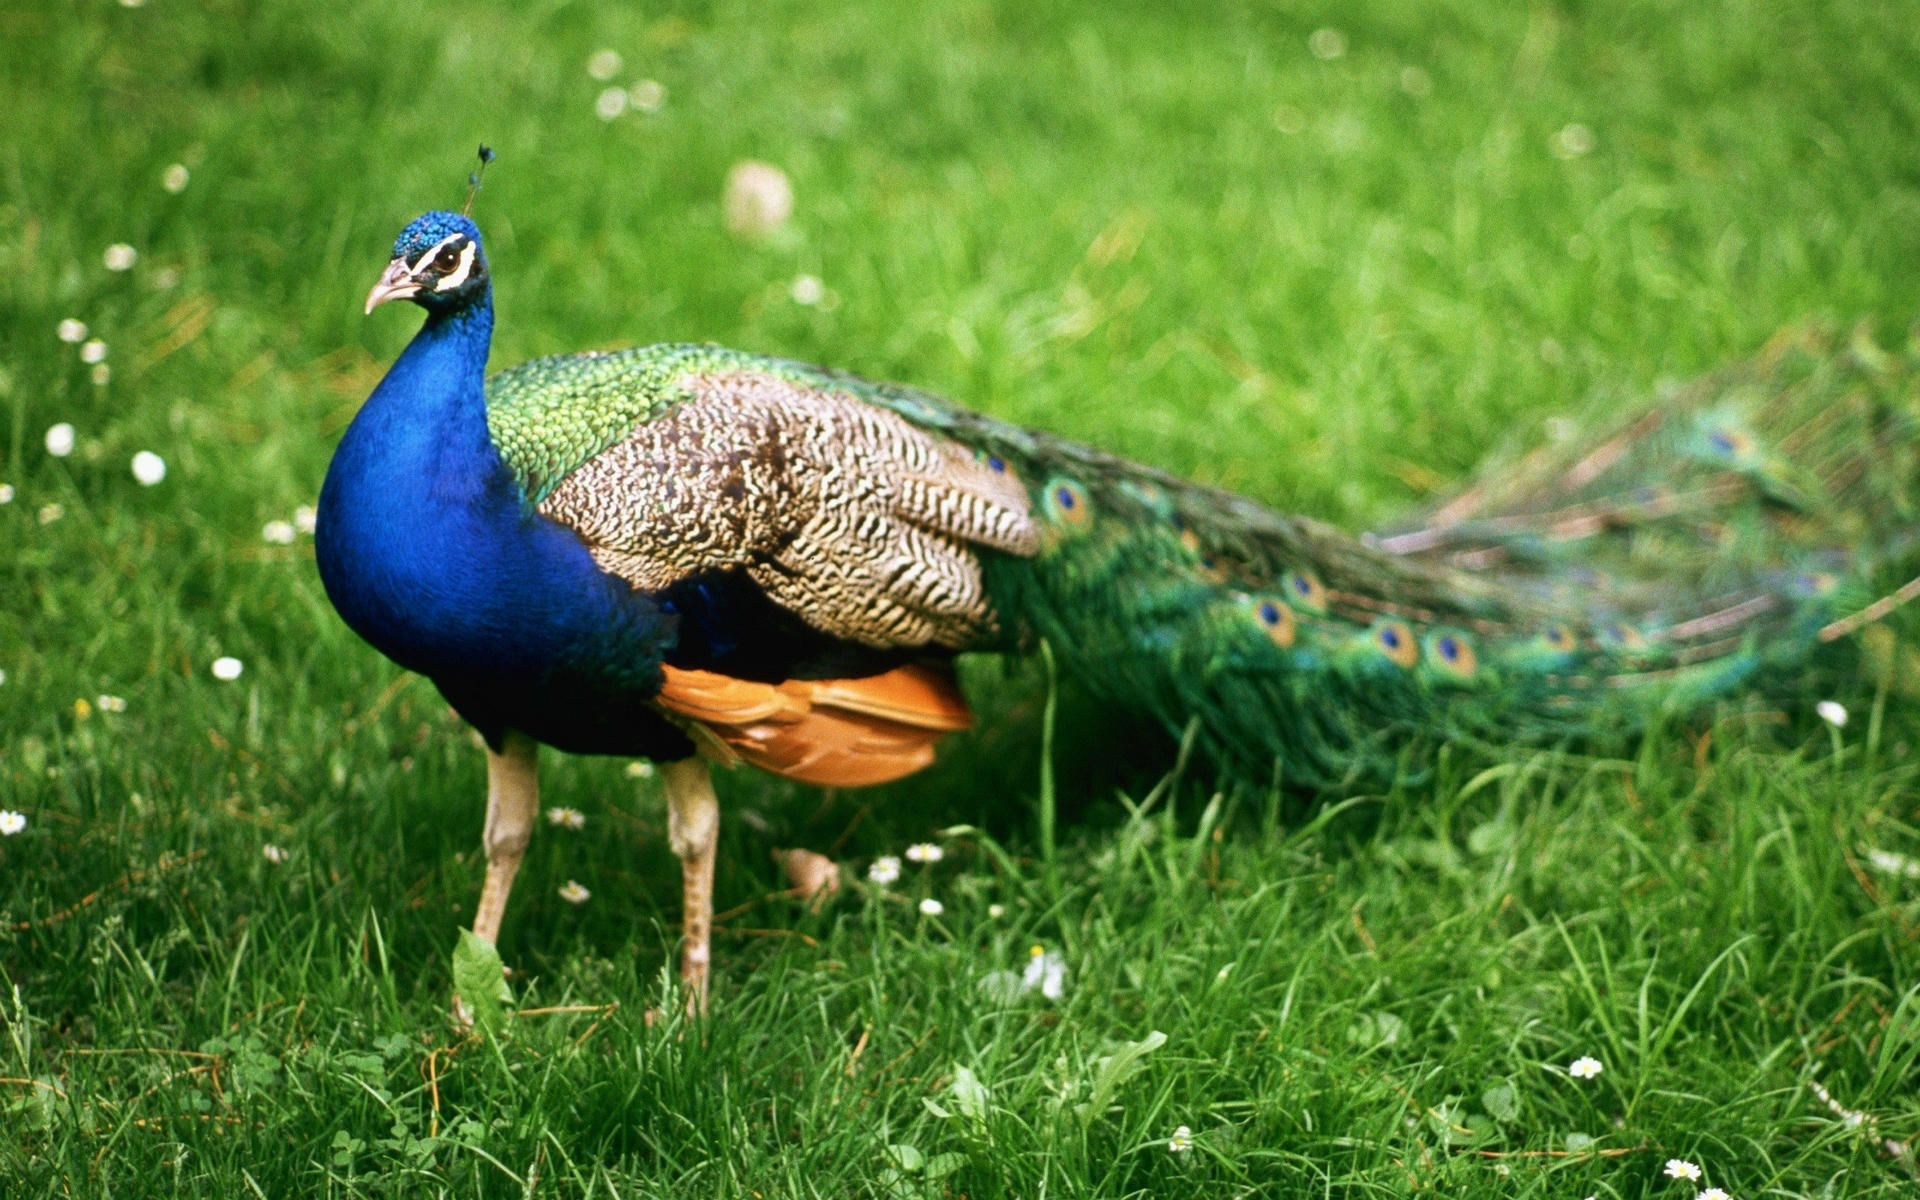 Full Hd Nature Wallpapers Peacock Images Peacock Photos Animals Beautiful